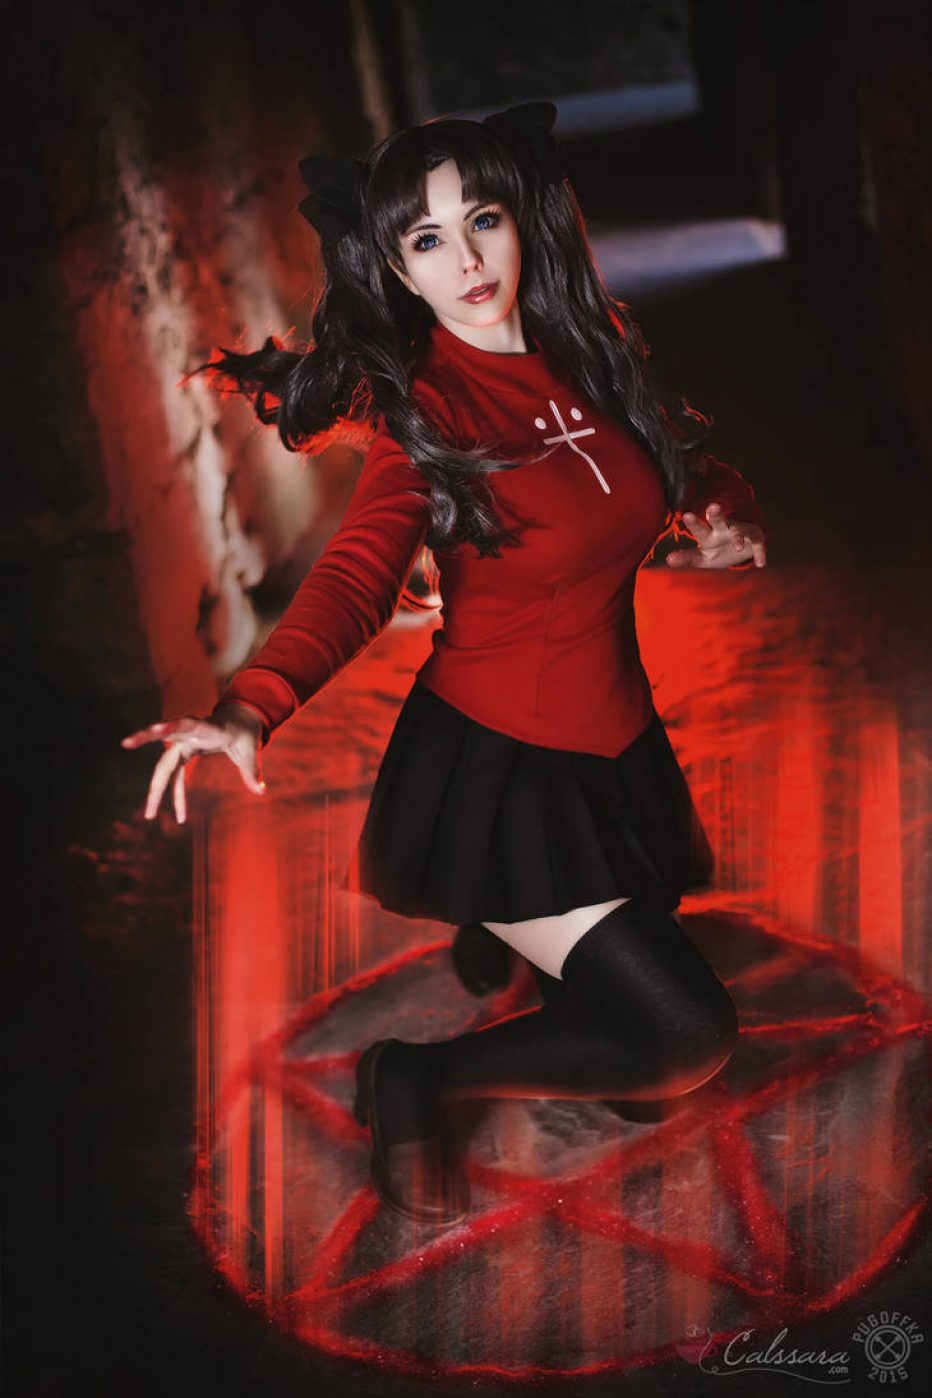 Fate-Stay-Night-Rin-Tohsaka-Cosplay-Gamers-Heroes-2.jpg